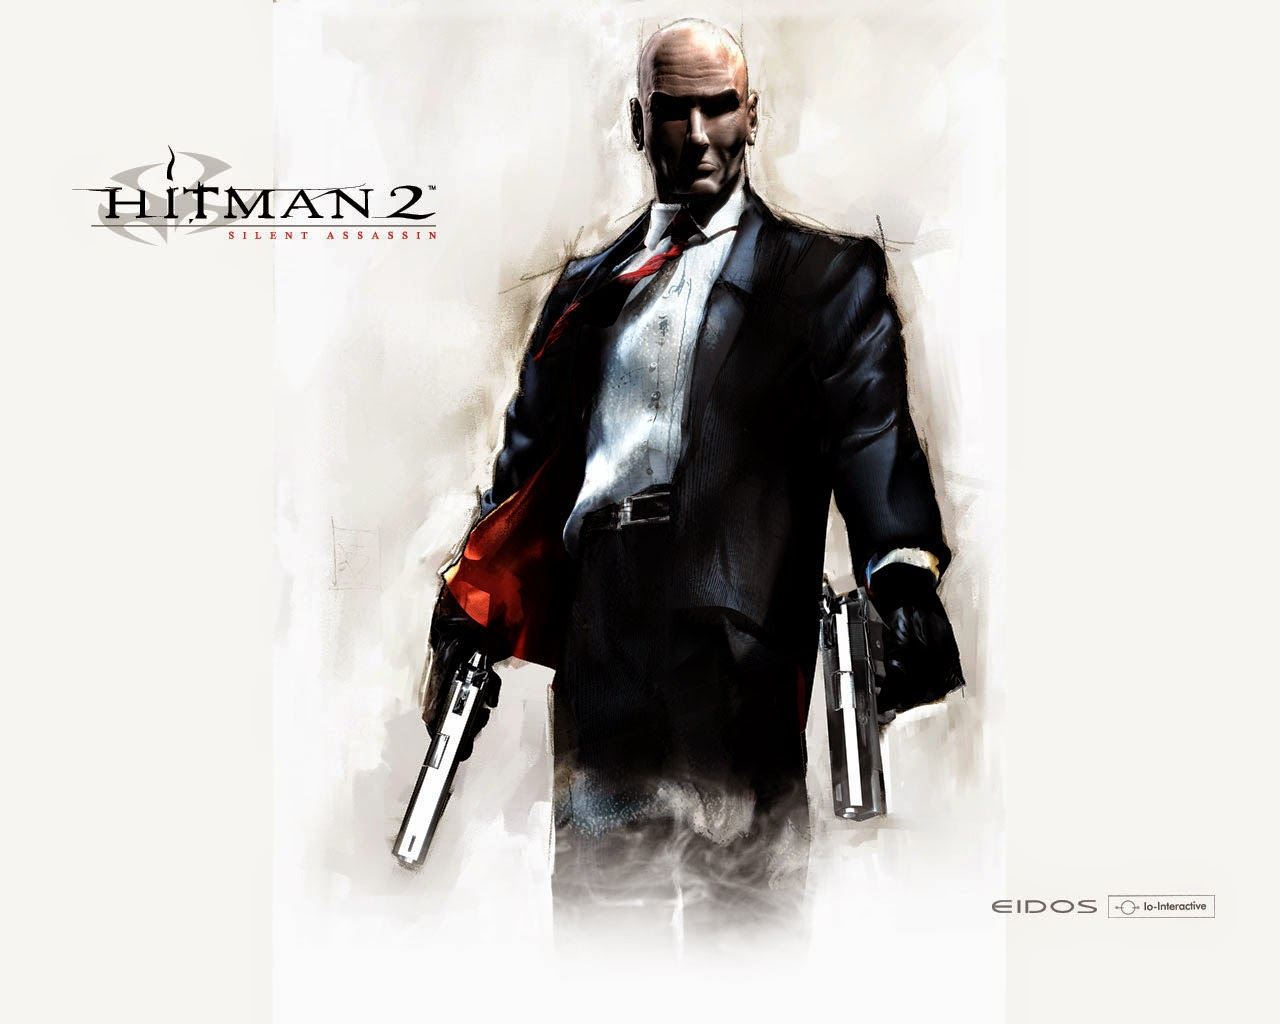 تحميل لعبة Hitman 2 Silent Assassin